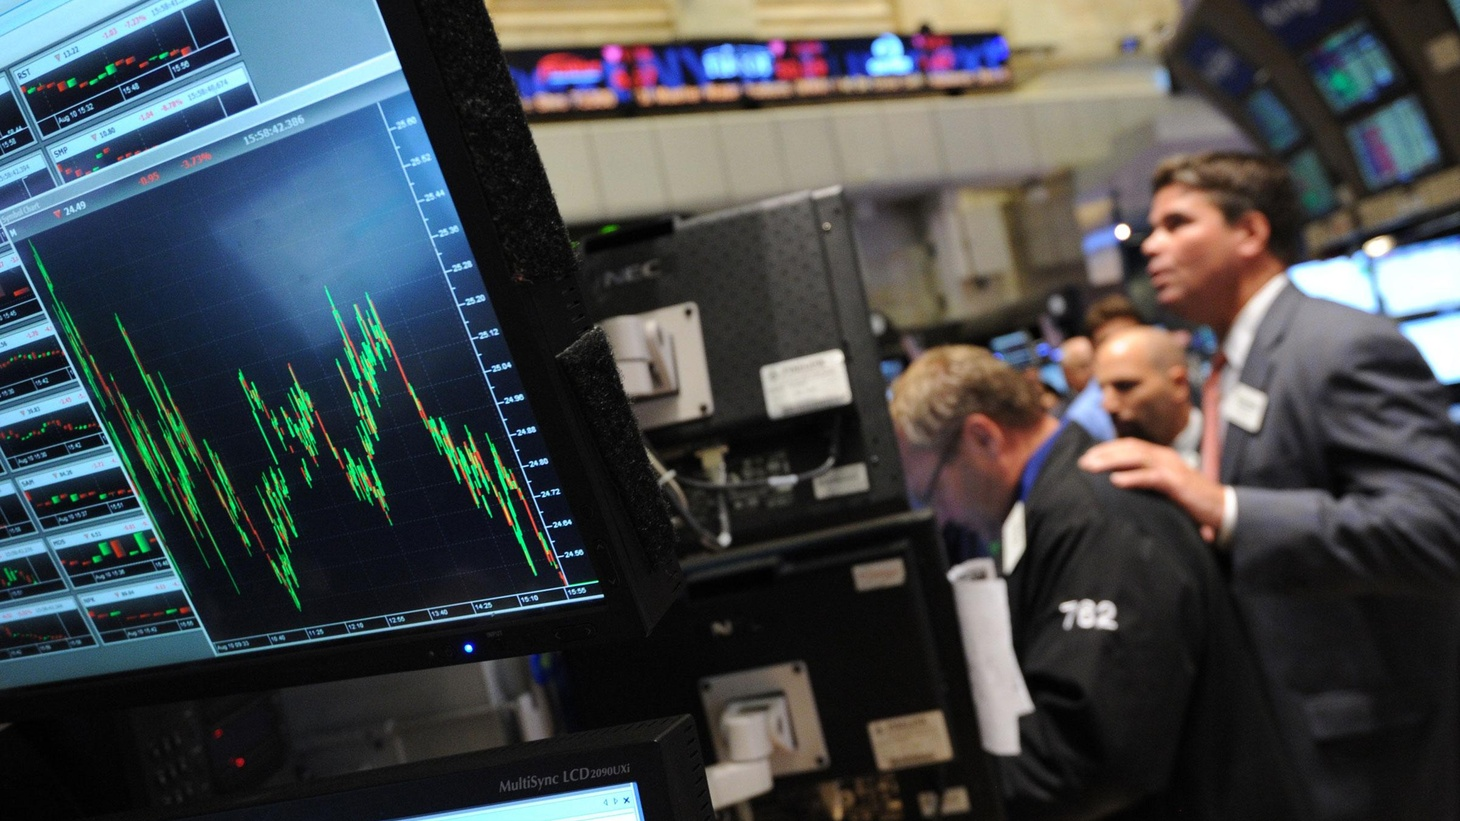 We reflect on the week's volatile trading on the stock market and the riots in the UK. Plus, the GOP debate in Iowa and anticipation of Texas Governor Perry's candidacy...